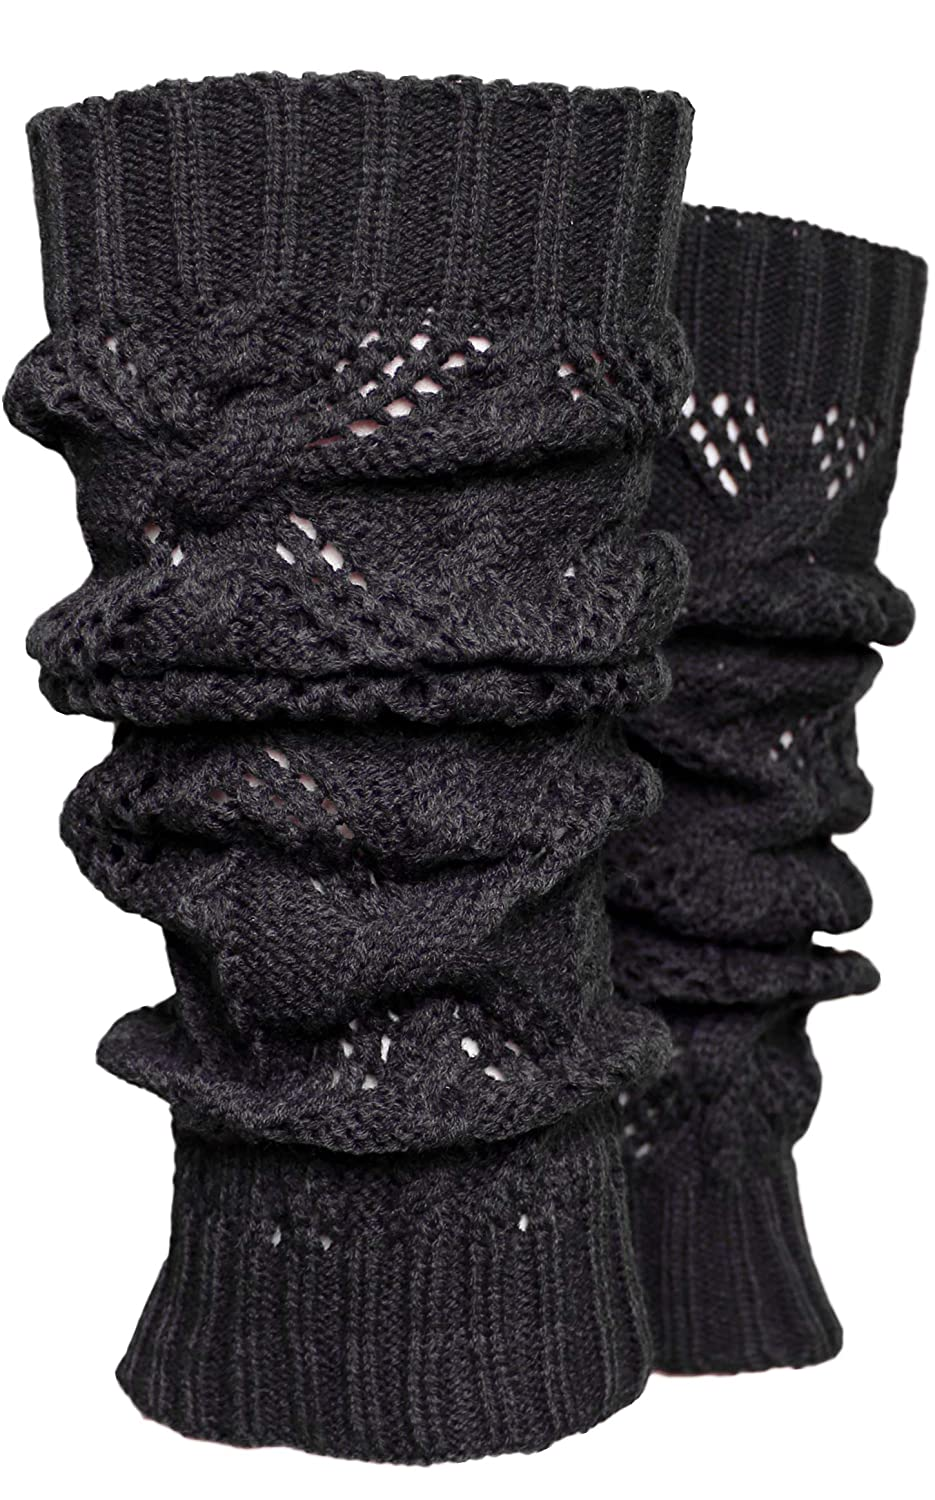 fe73c6453c9aa Classic solid color cable knitted leg warmers. One Size Fits Most - One  pair per order. Approximately 15.5 inches long. Fashionable Knee High Winter  Knit ...